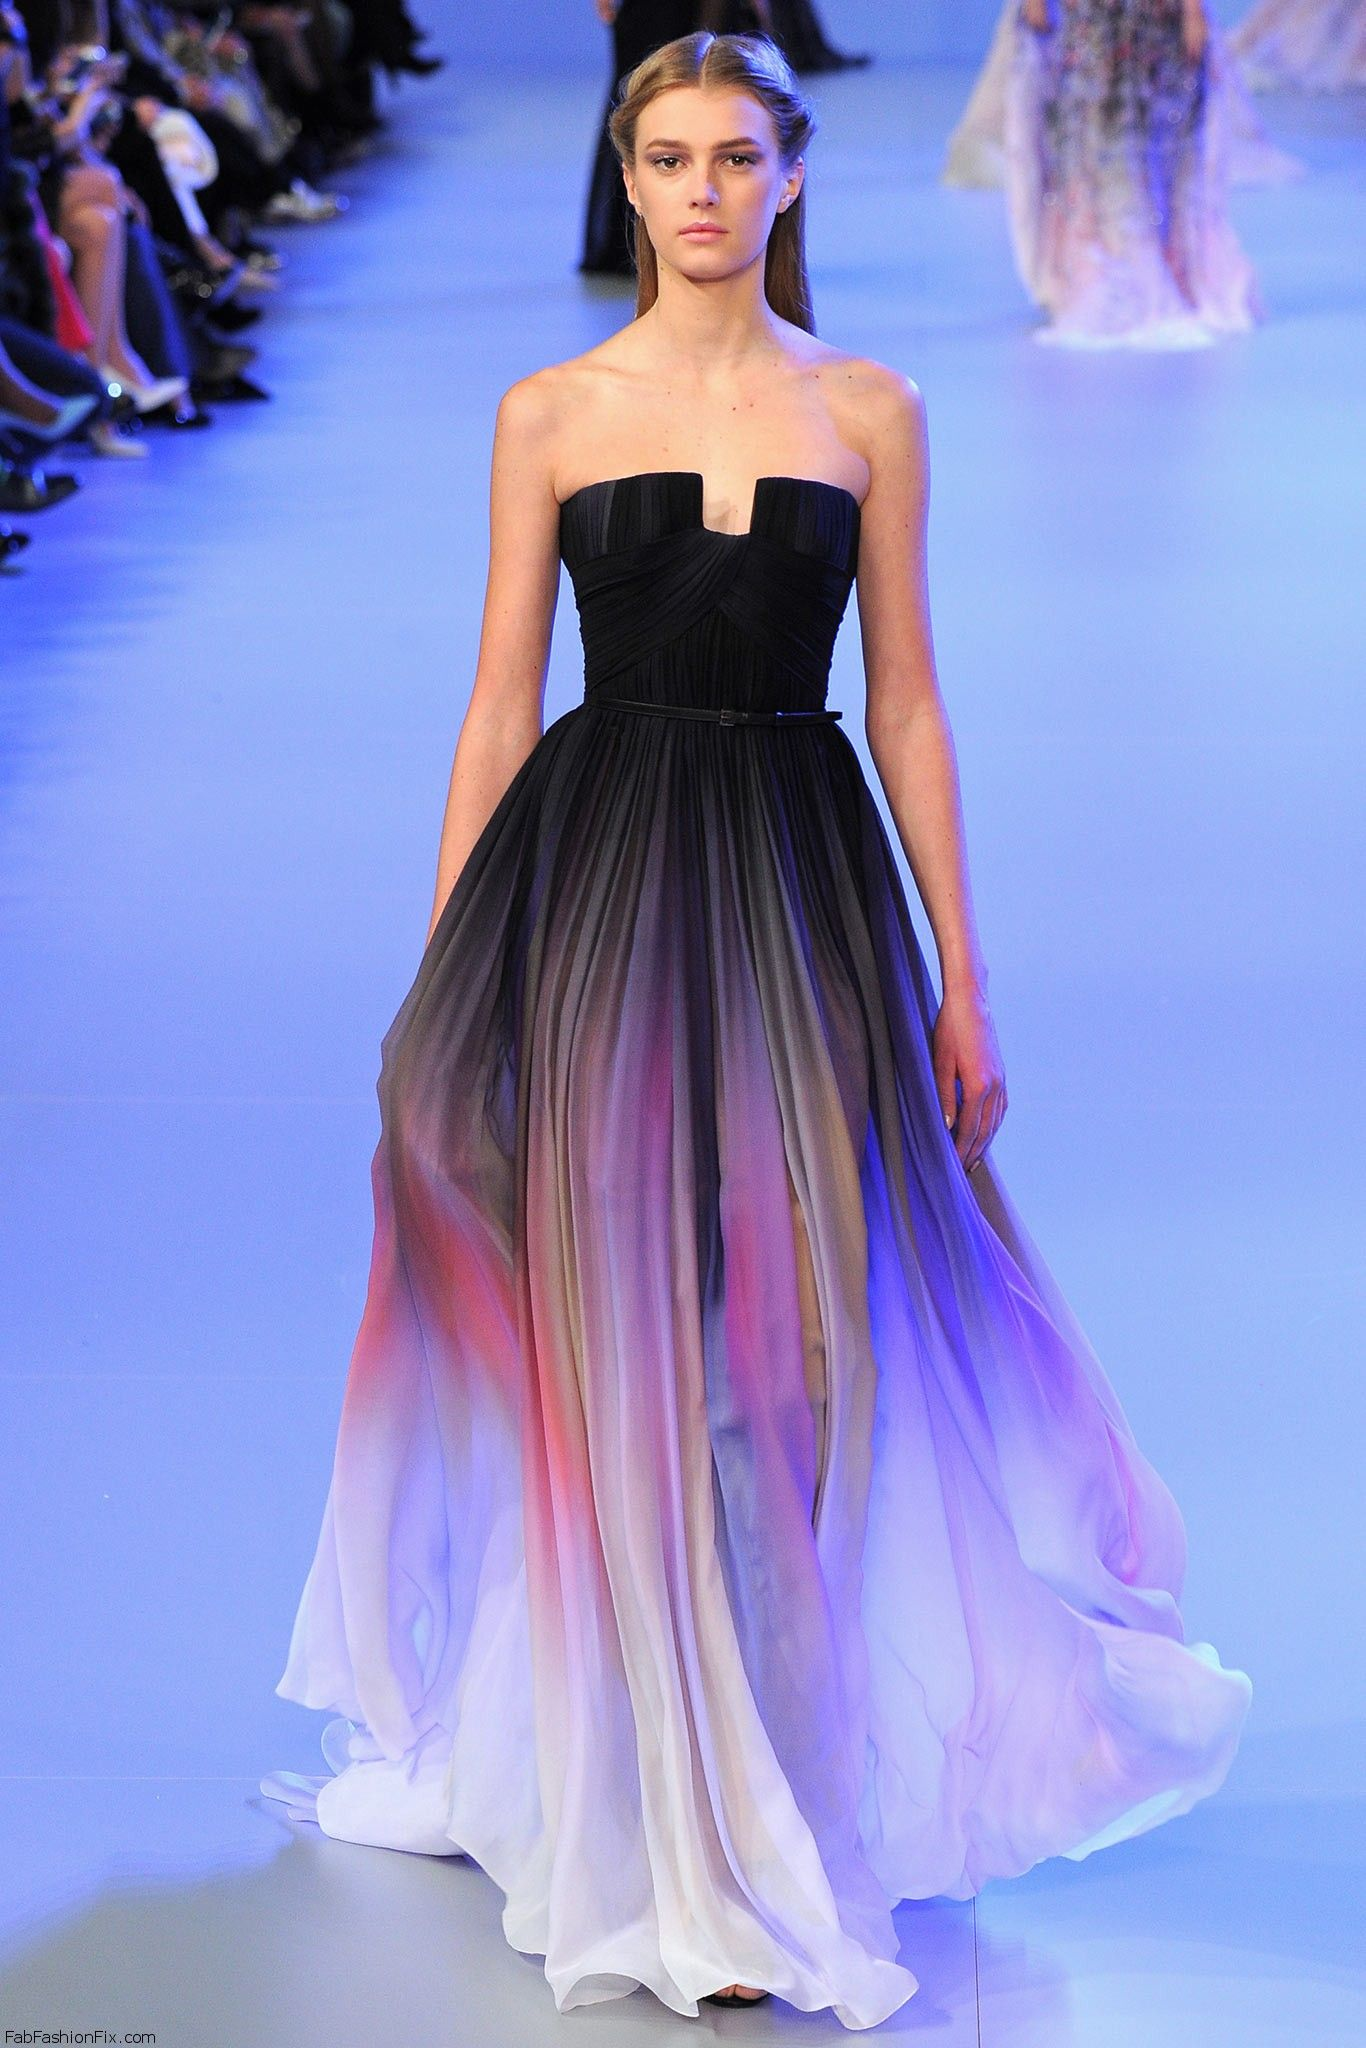 elie saab haute couture spring 2014 collection fab